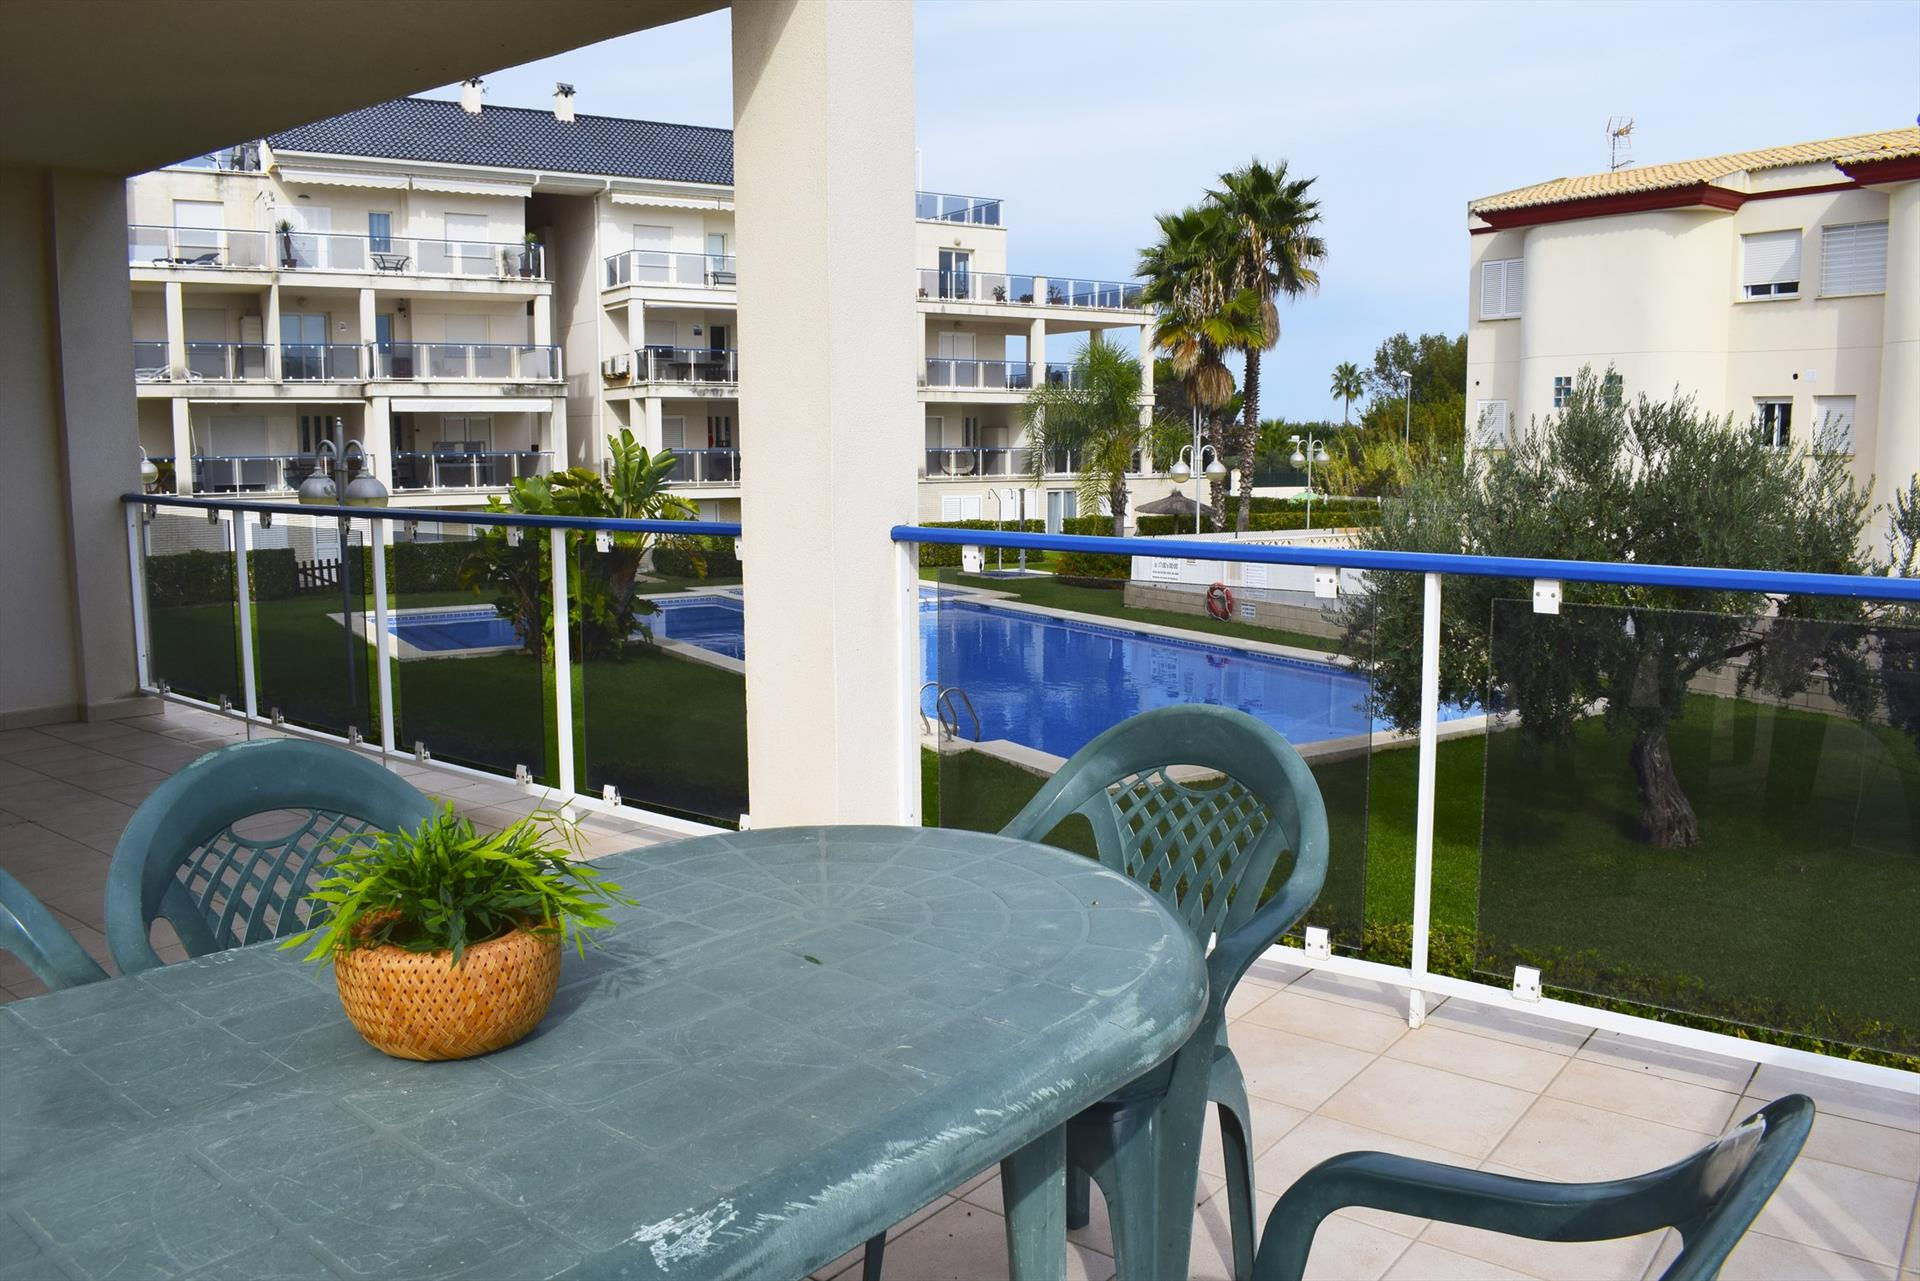 DUP3014 Vora Golf II Playa Rabdells, Beautiful and comfortable apartment in Oliva, on the Costa Blanca, Spain  with communal pool for 6 persons.....